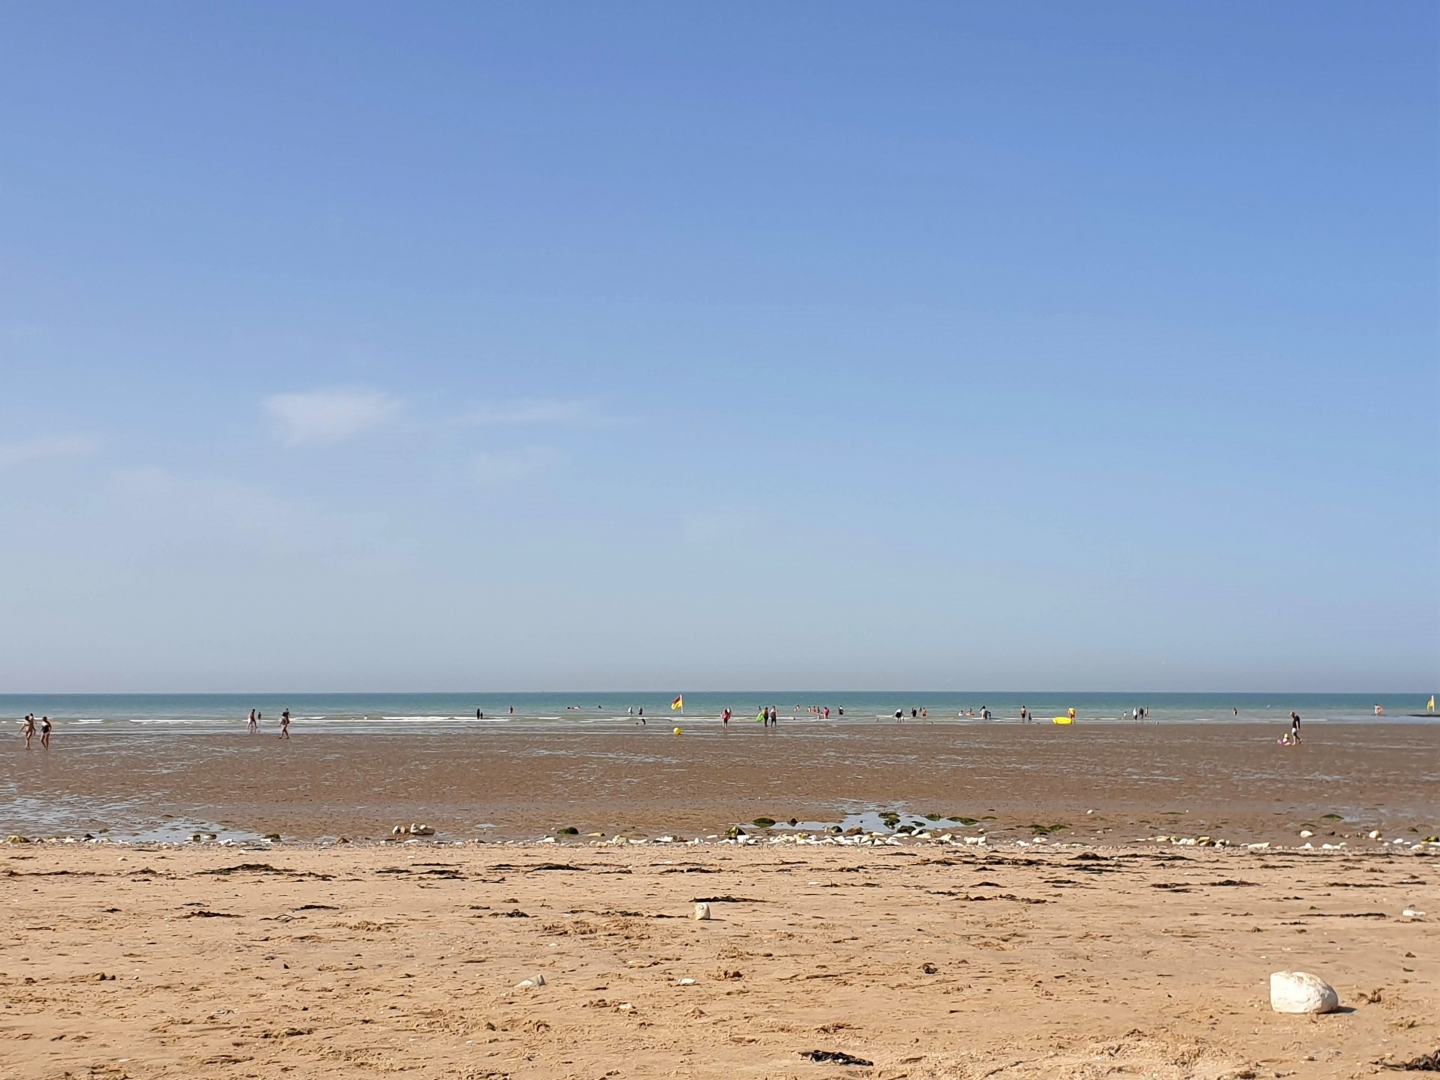 Westgate-on-sea beach near Margate in Kent - great for young children